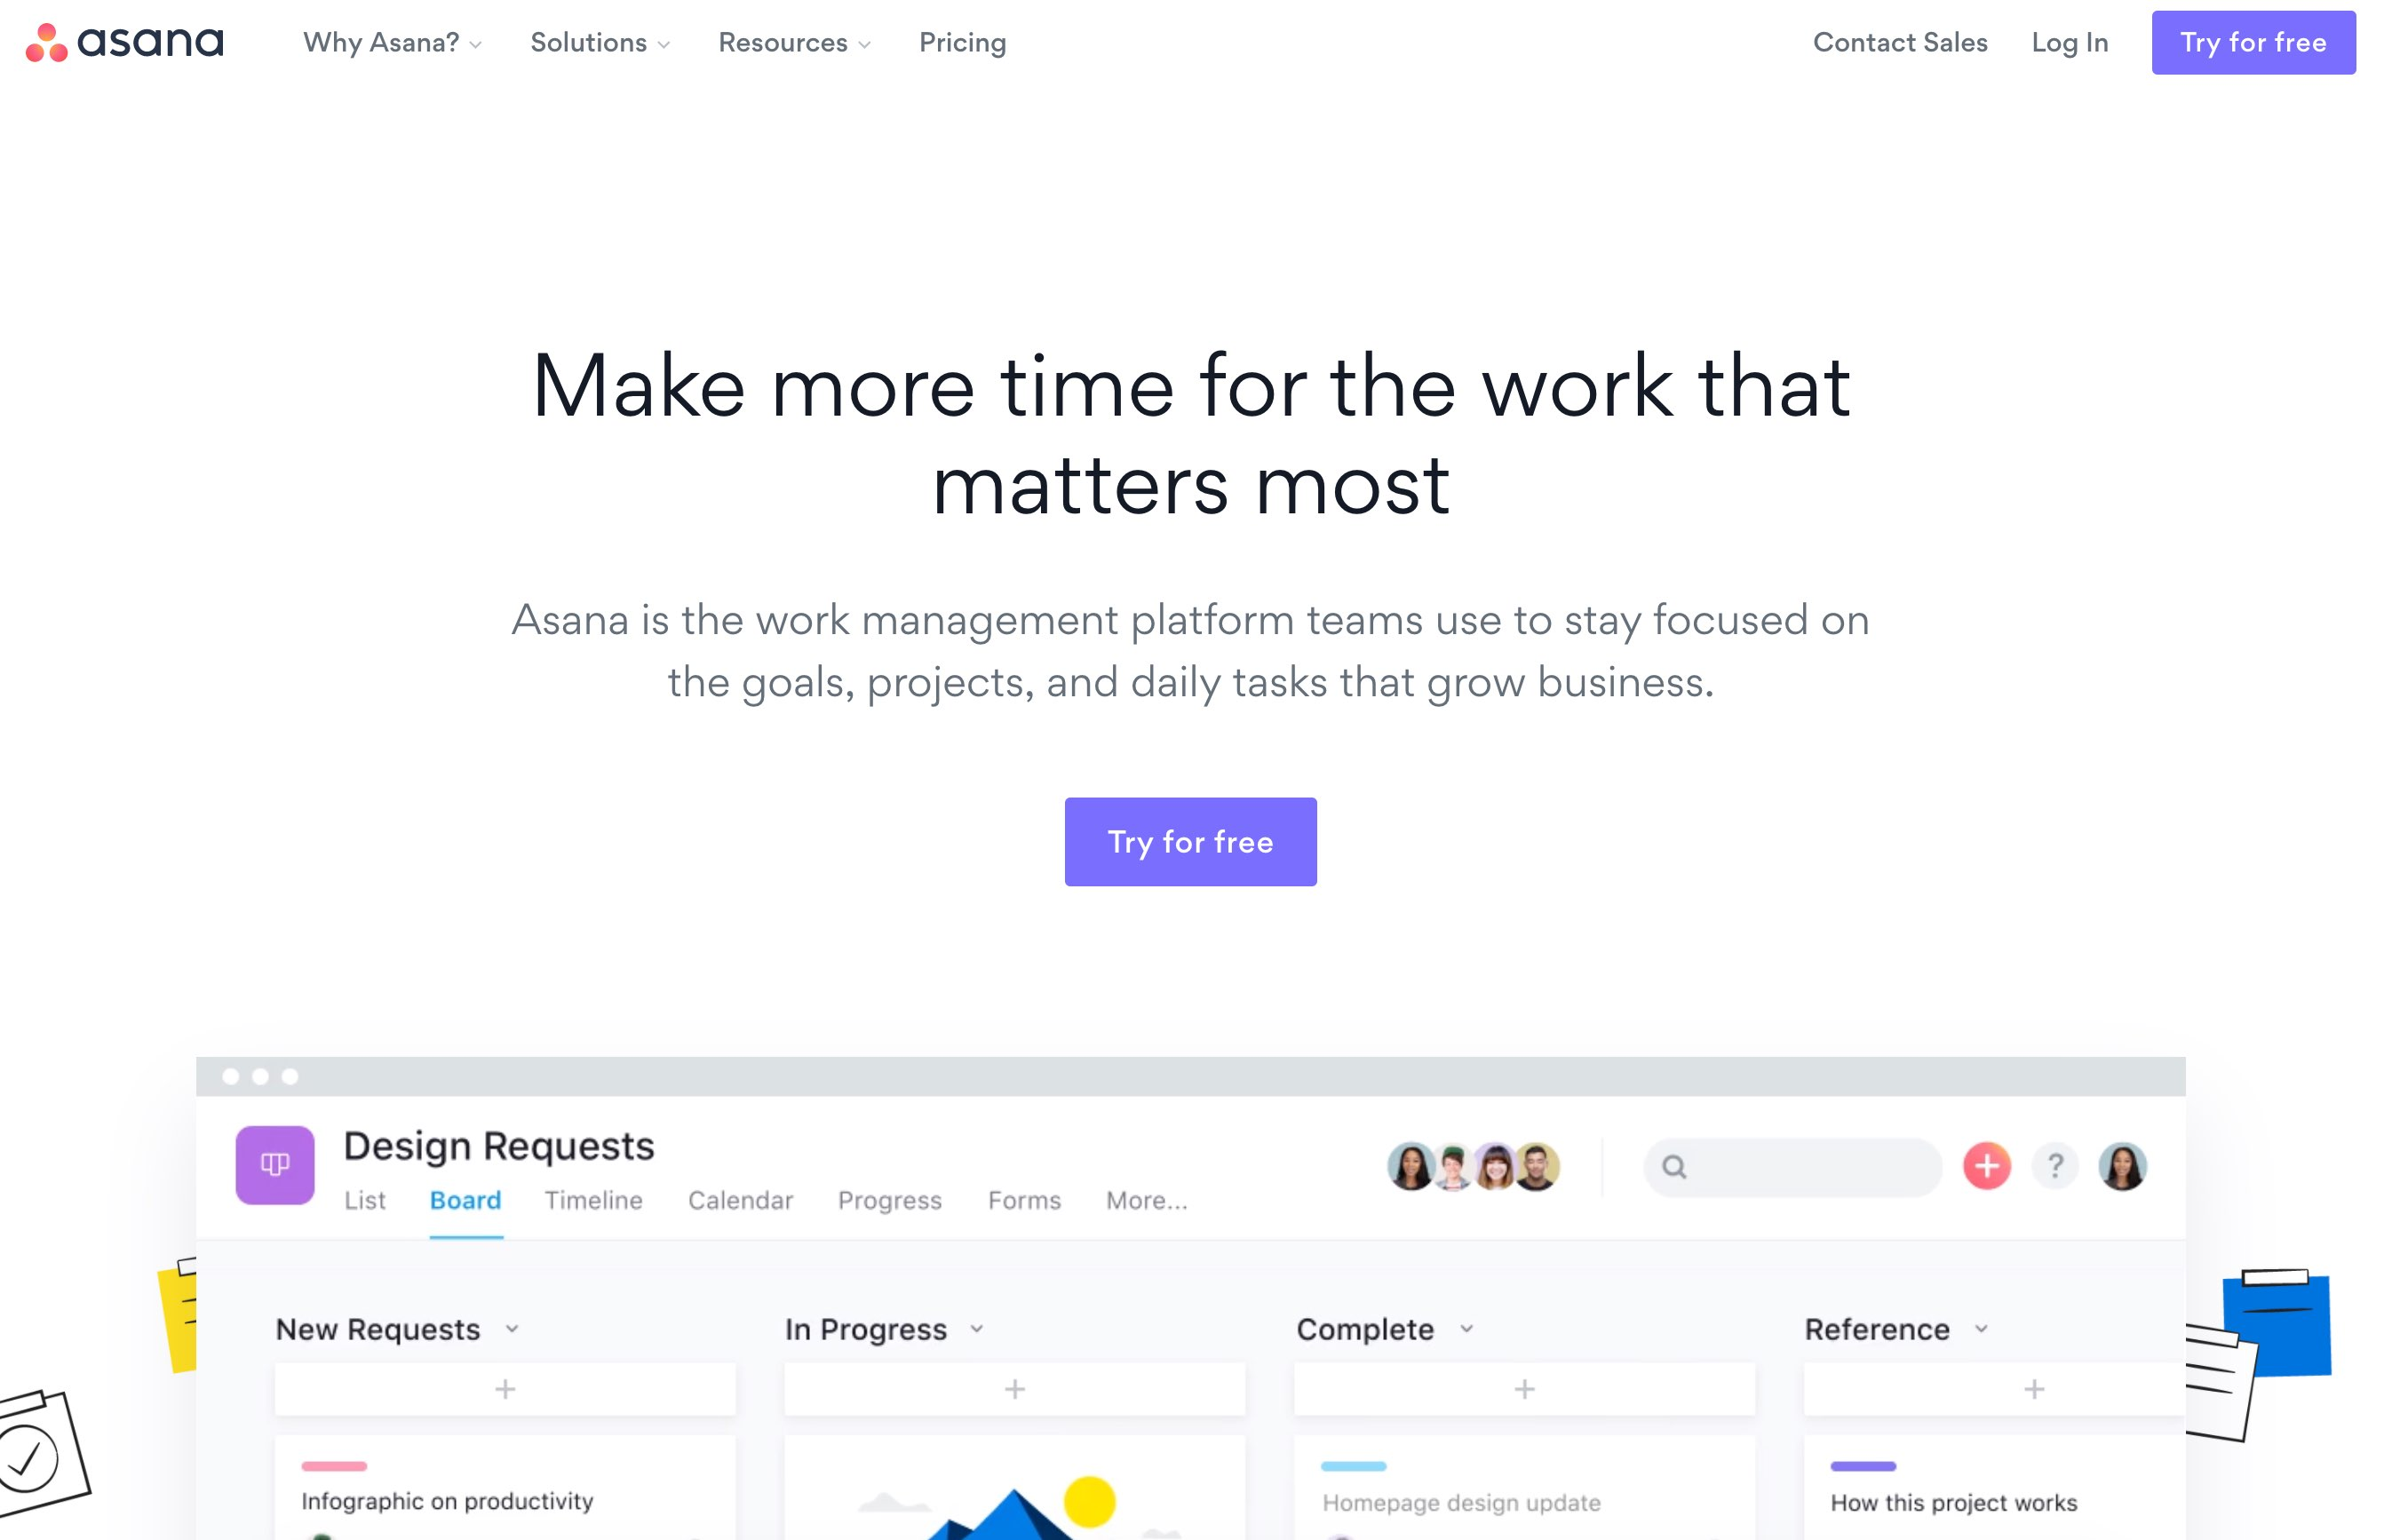 Asana homepage in January 2020